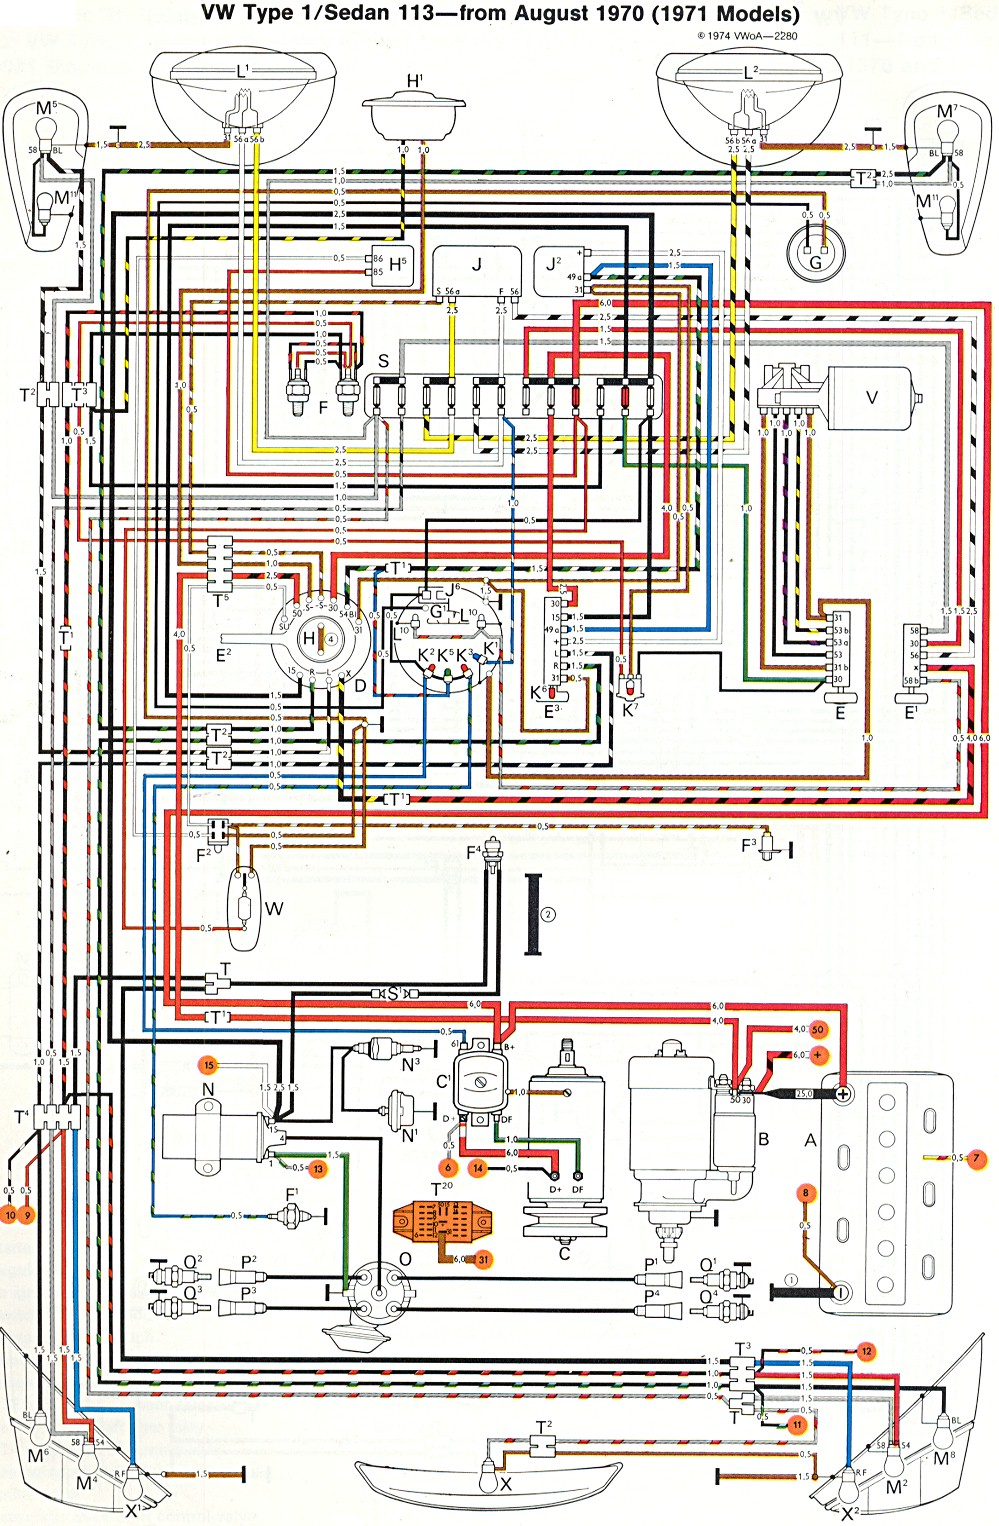 bug_super_71 1971 super beetle wiring diagram thegoldenbug com wiring diagram for 71 super beetle at soozxer.org